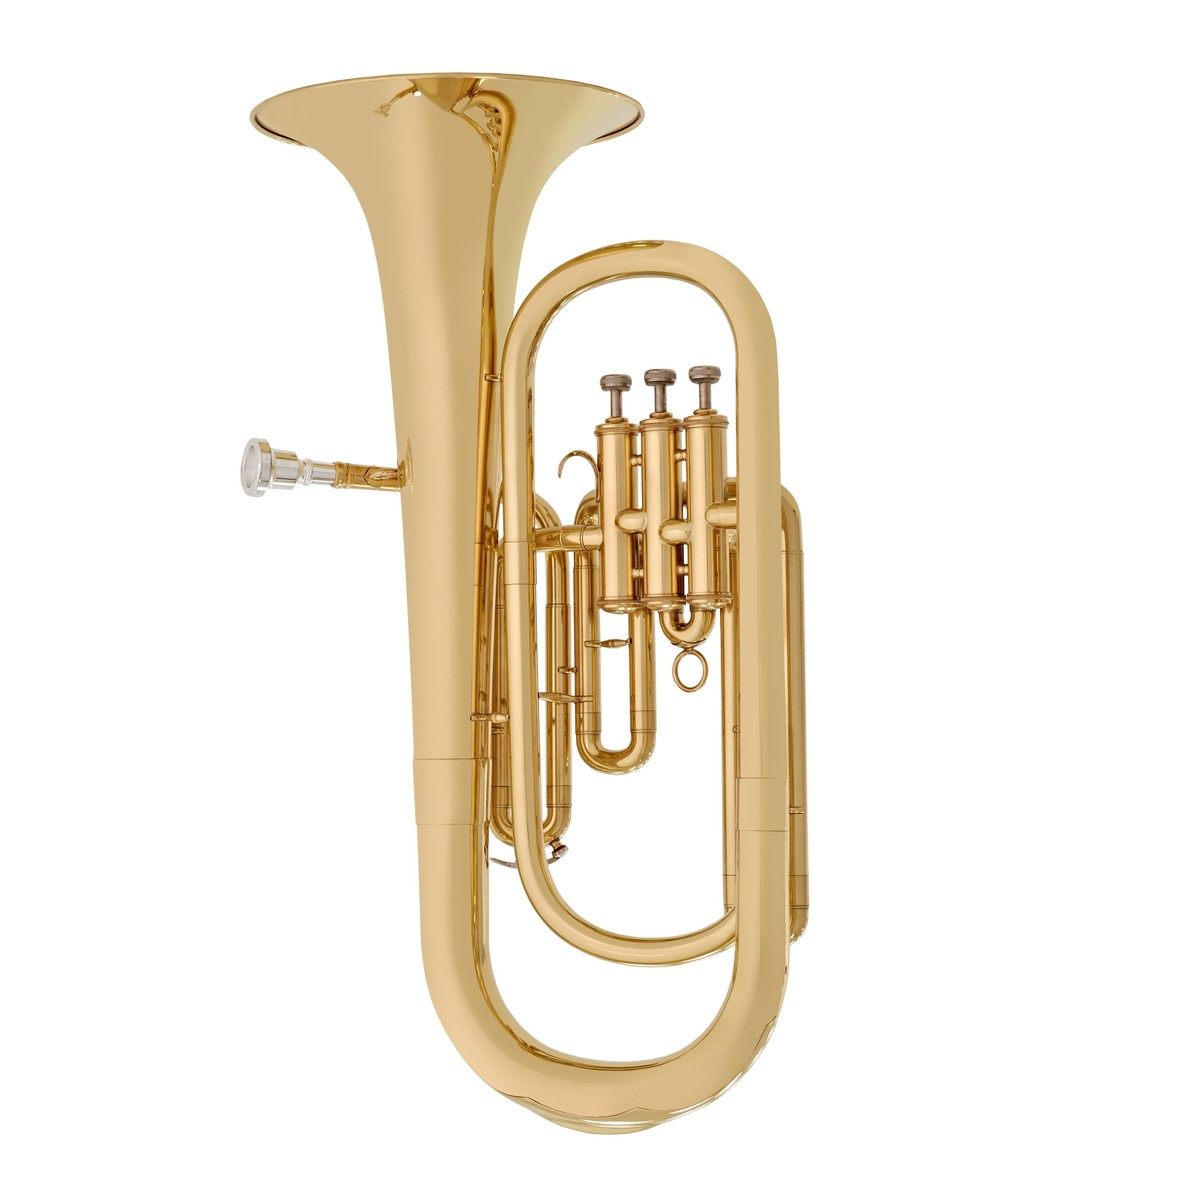 Student Baritone Horn by Gear4music at Gear4music.com